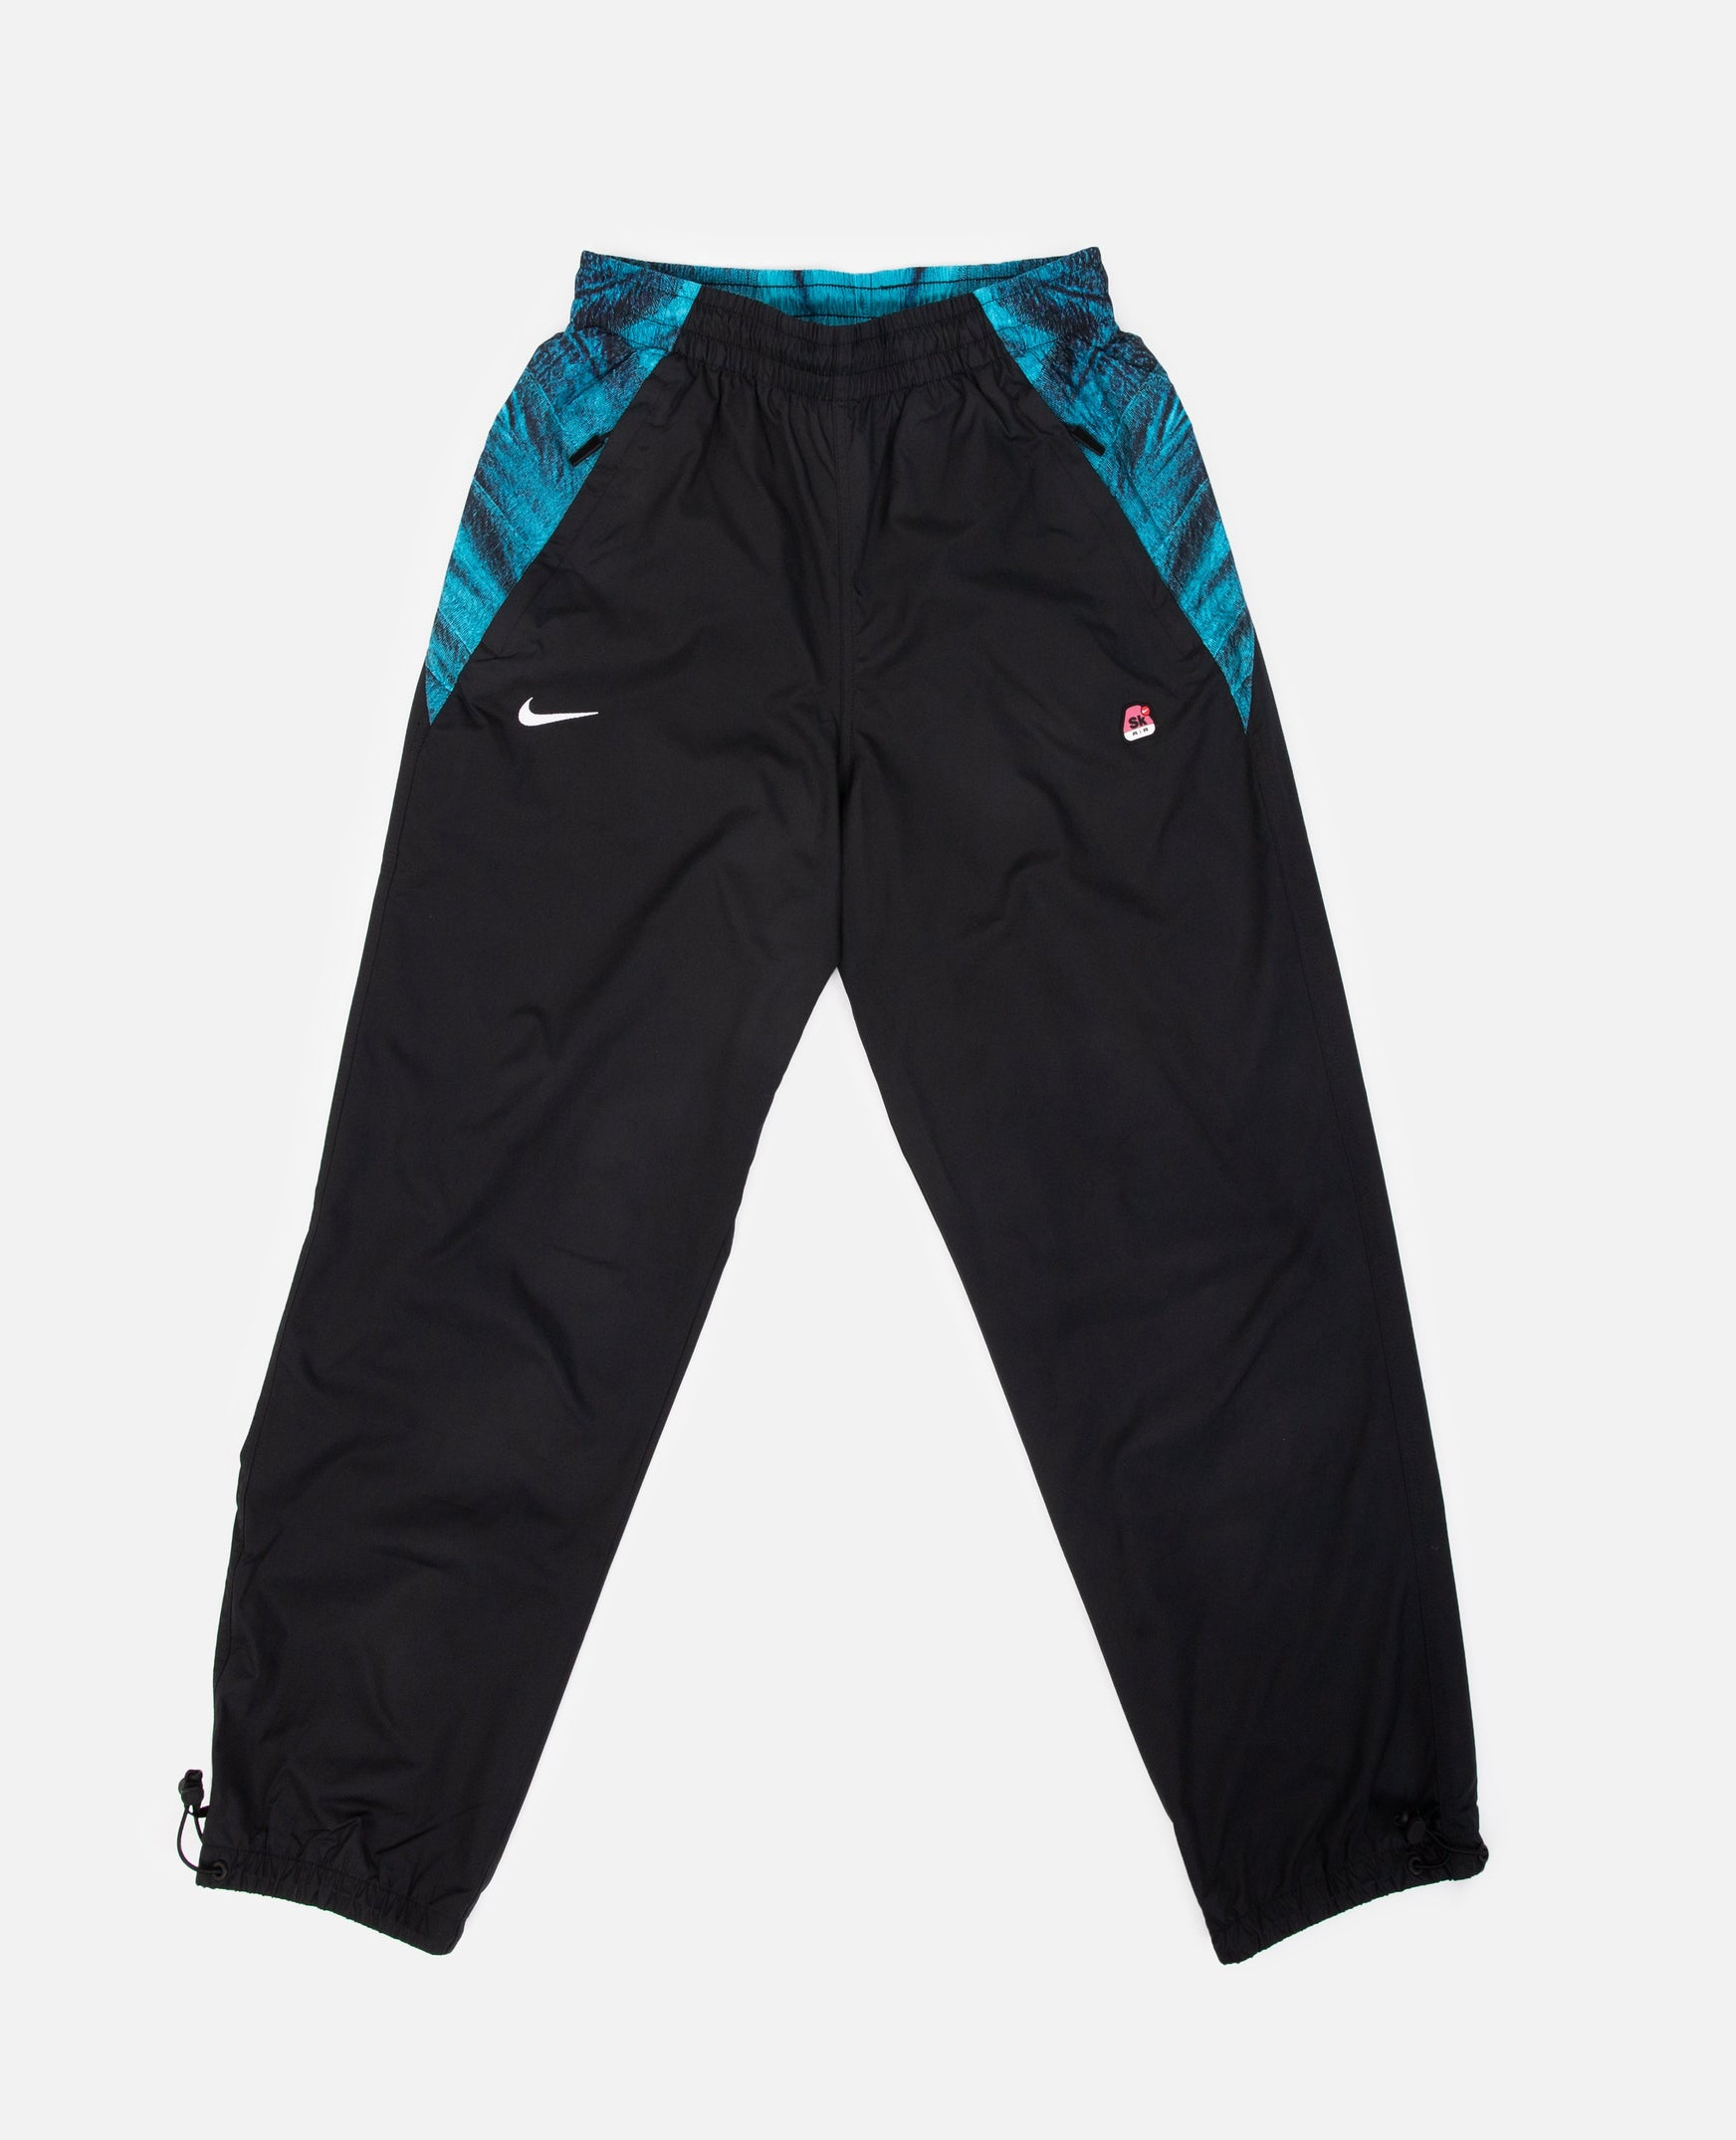 Nike x Skepta NB Track Pants (Black)